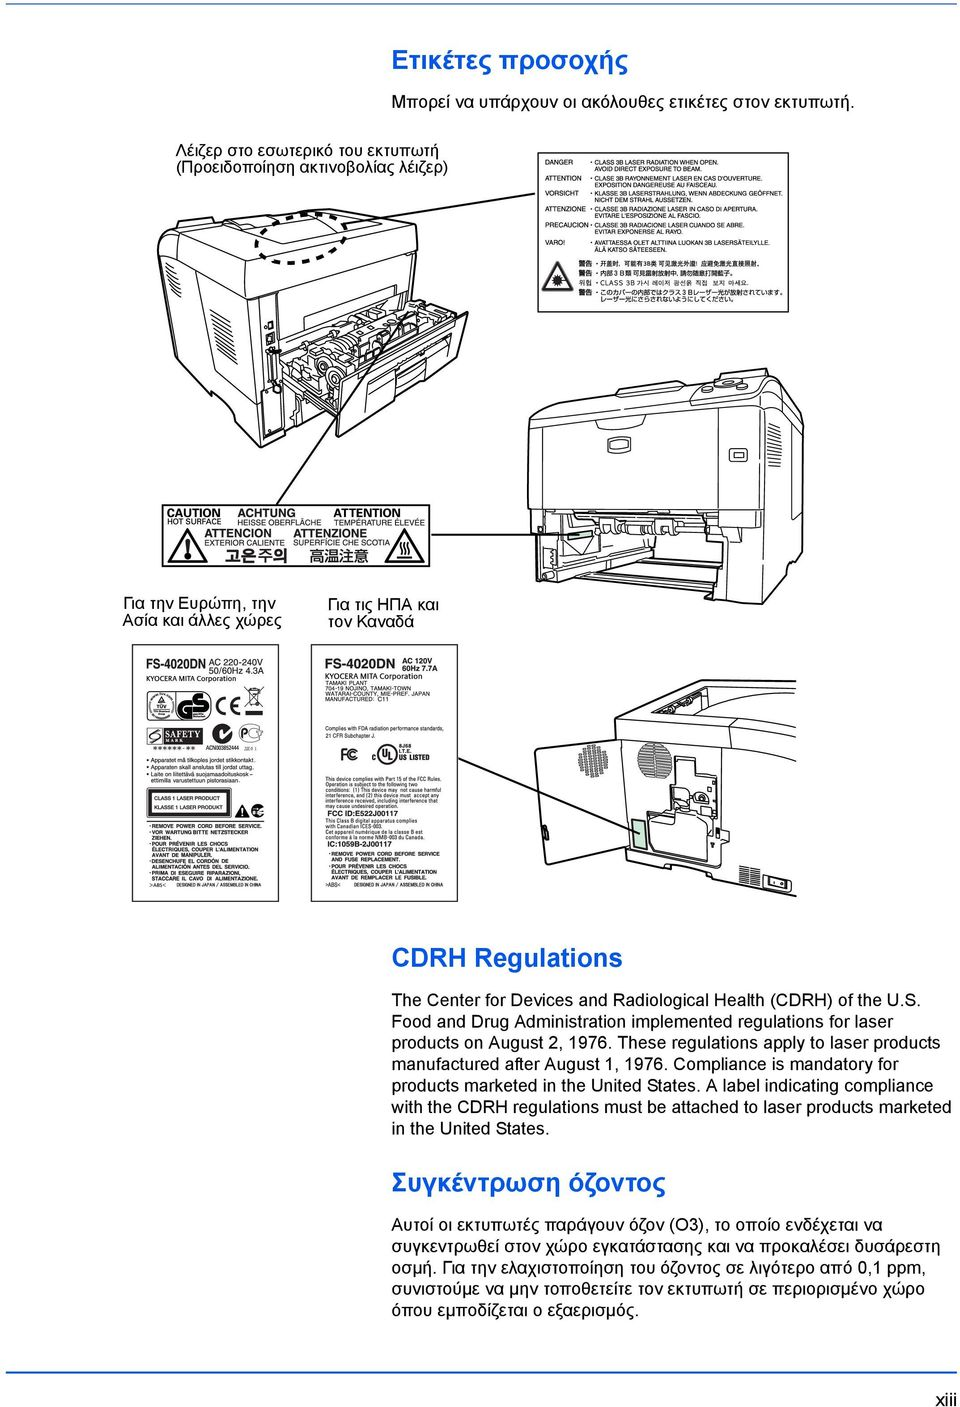 Health (CDRH) of the U.S. Food and Drug Administration implemented regulations for laser products on August 2, 1976. These regulations apply to laser products manufactured after August 1, 1976.